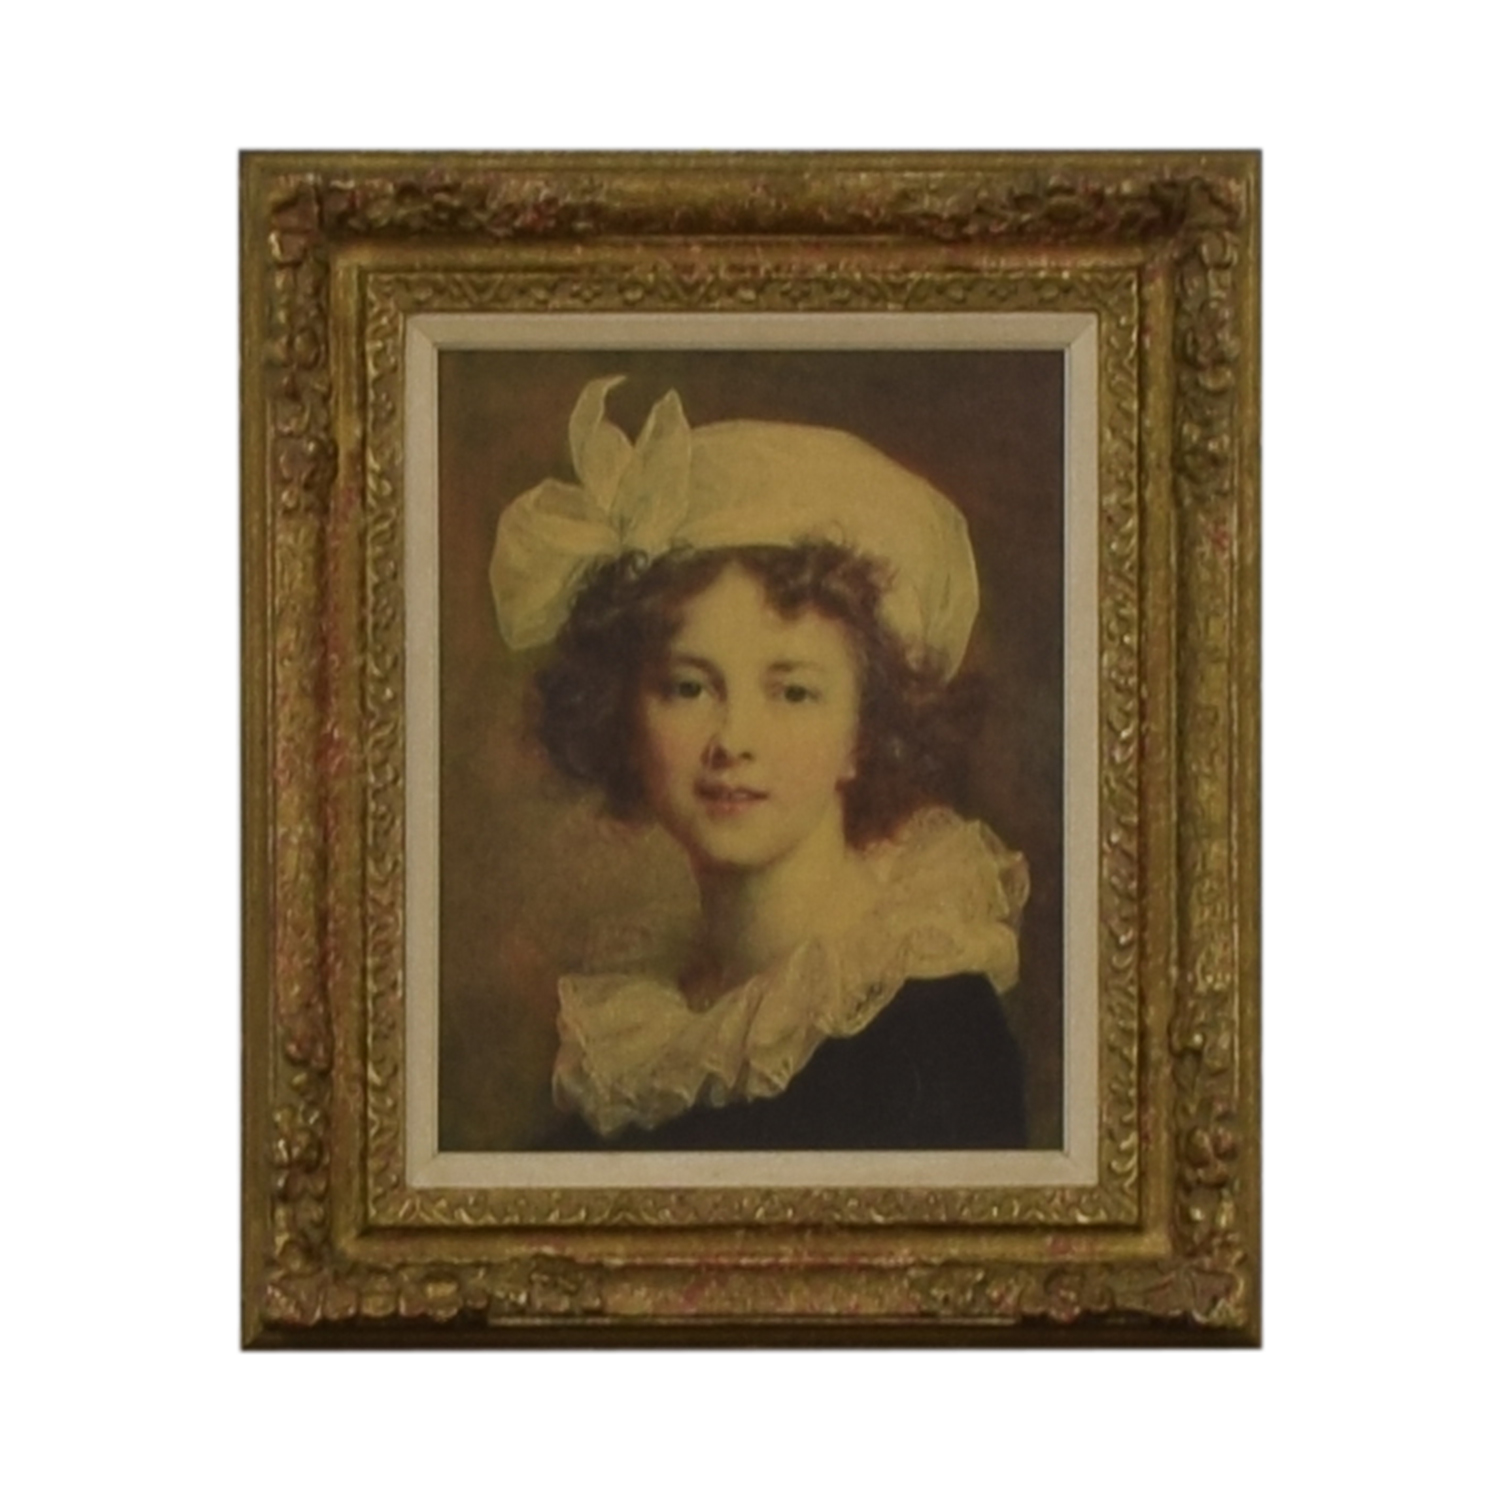 Vintage Young Women Gold Framed Painting / Decor